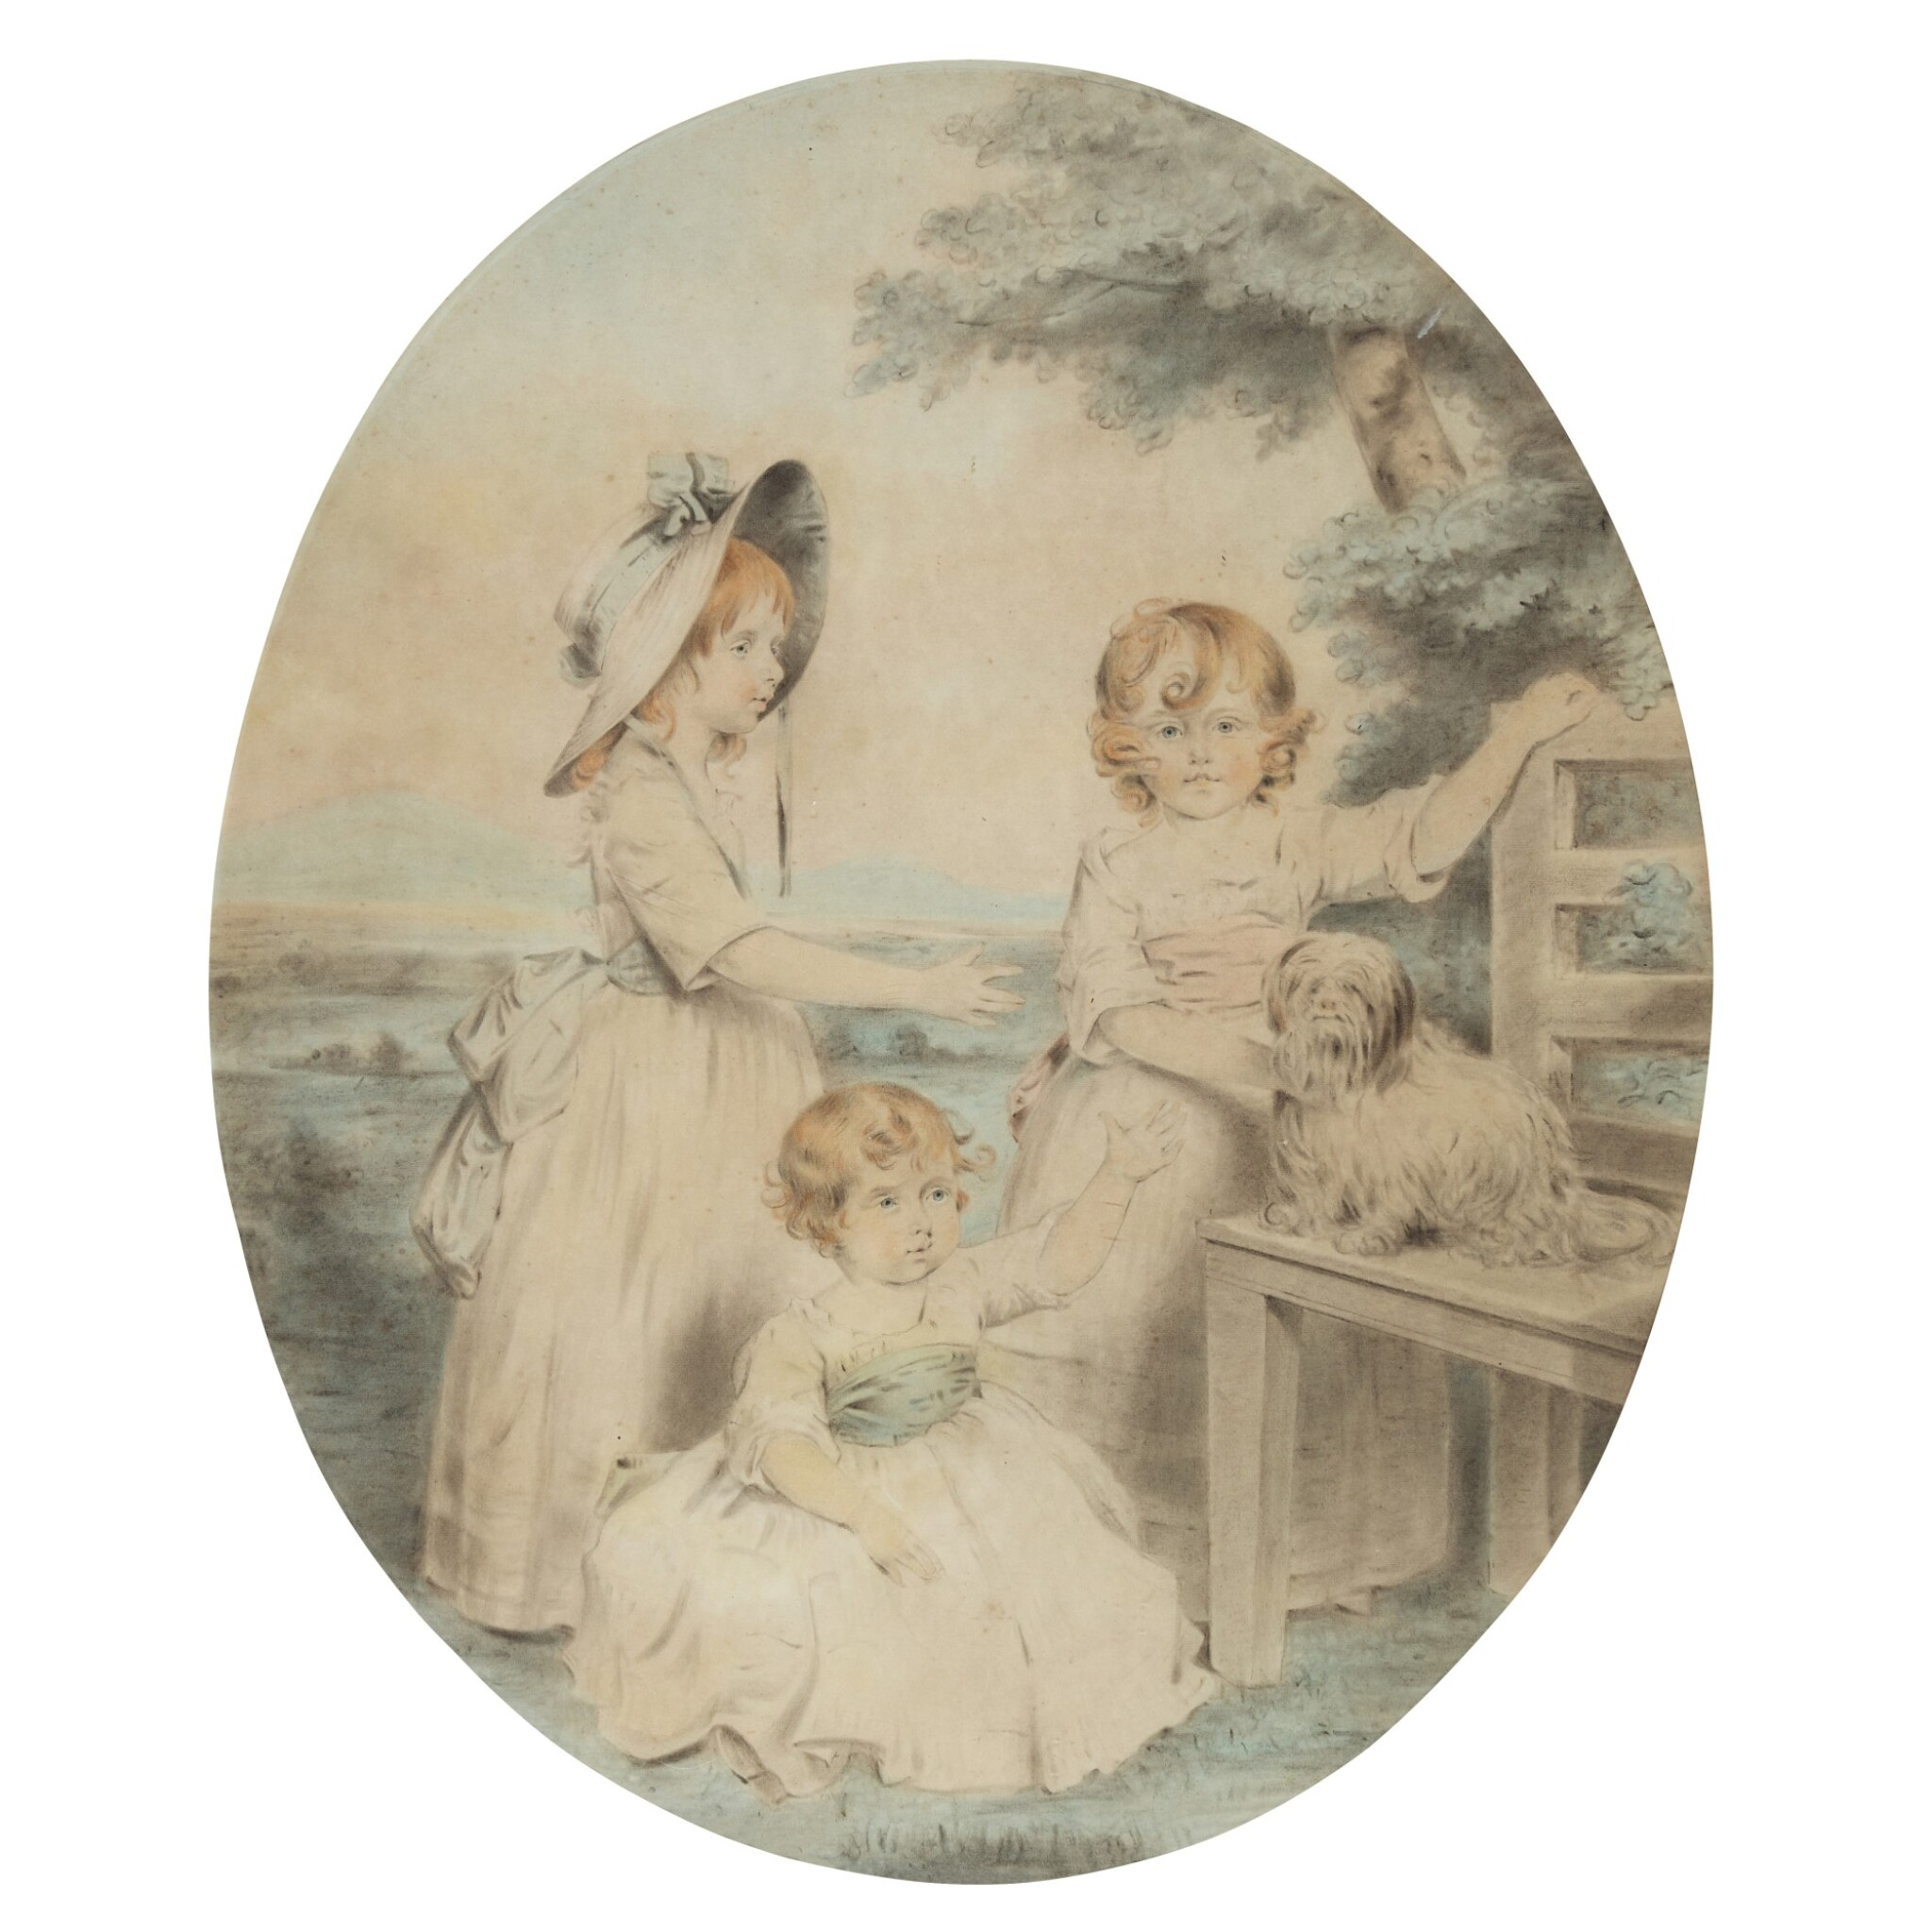 View 1 of Lot 203. A group portrait of Lady Honora Elizabeth Hester Lambart (1784-1856), Lady Sophia Augusta Lambart (1787-1798), Lady Alicia Margaretta Hockmore Lambart (1785-1818) and their dog.